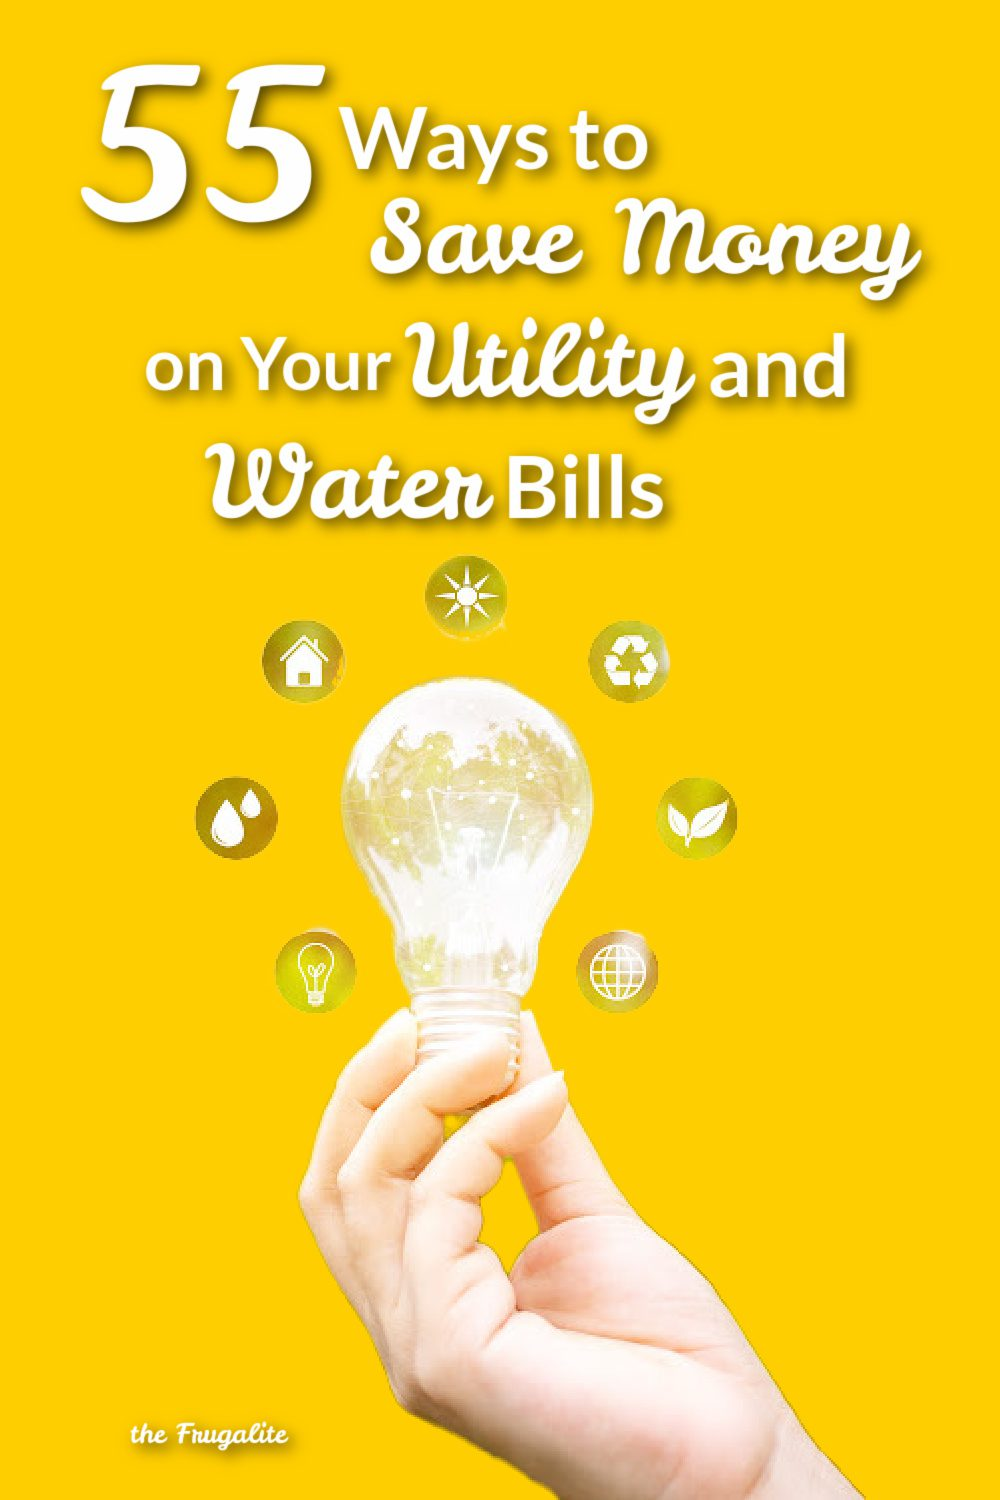 55 Ways To Save Money on Utility and Water Bills